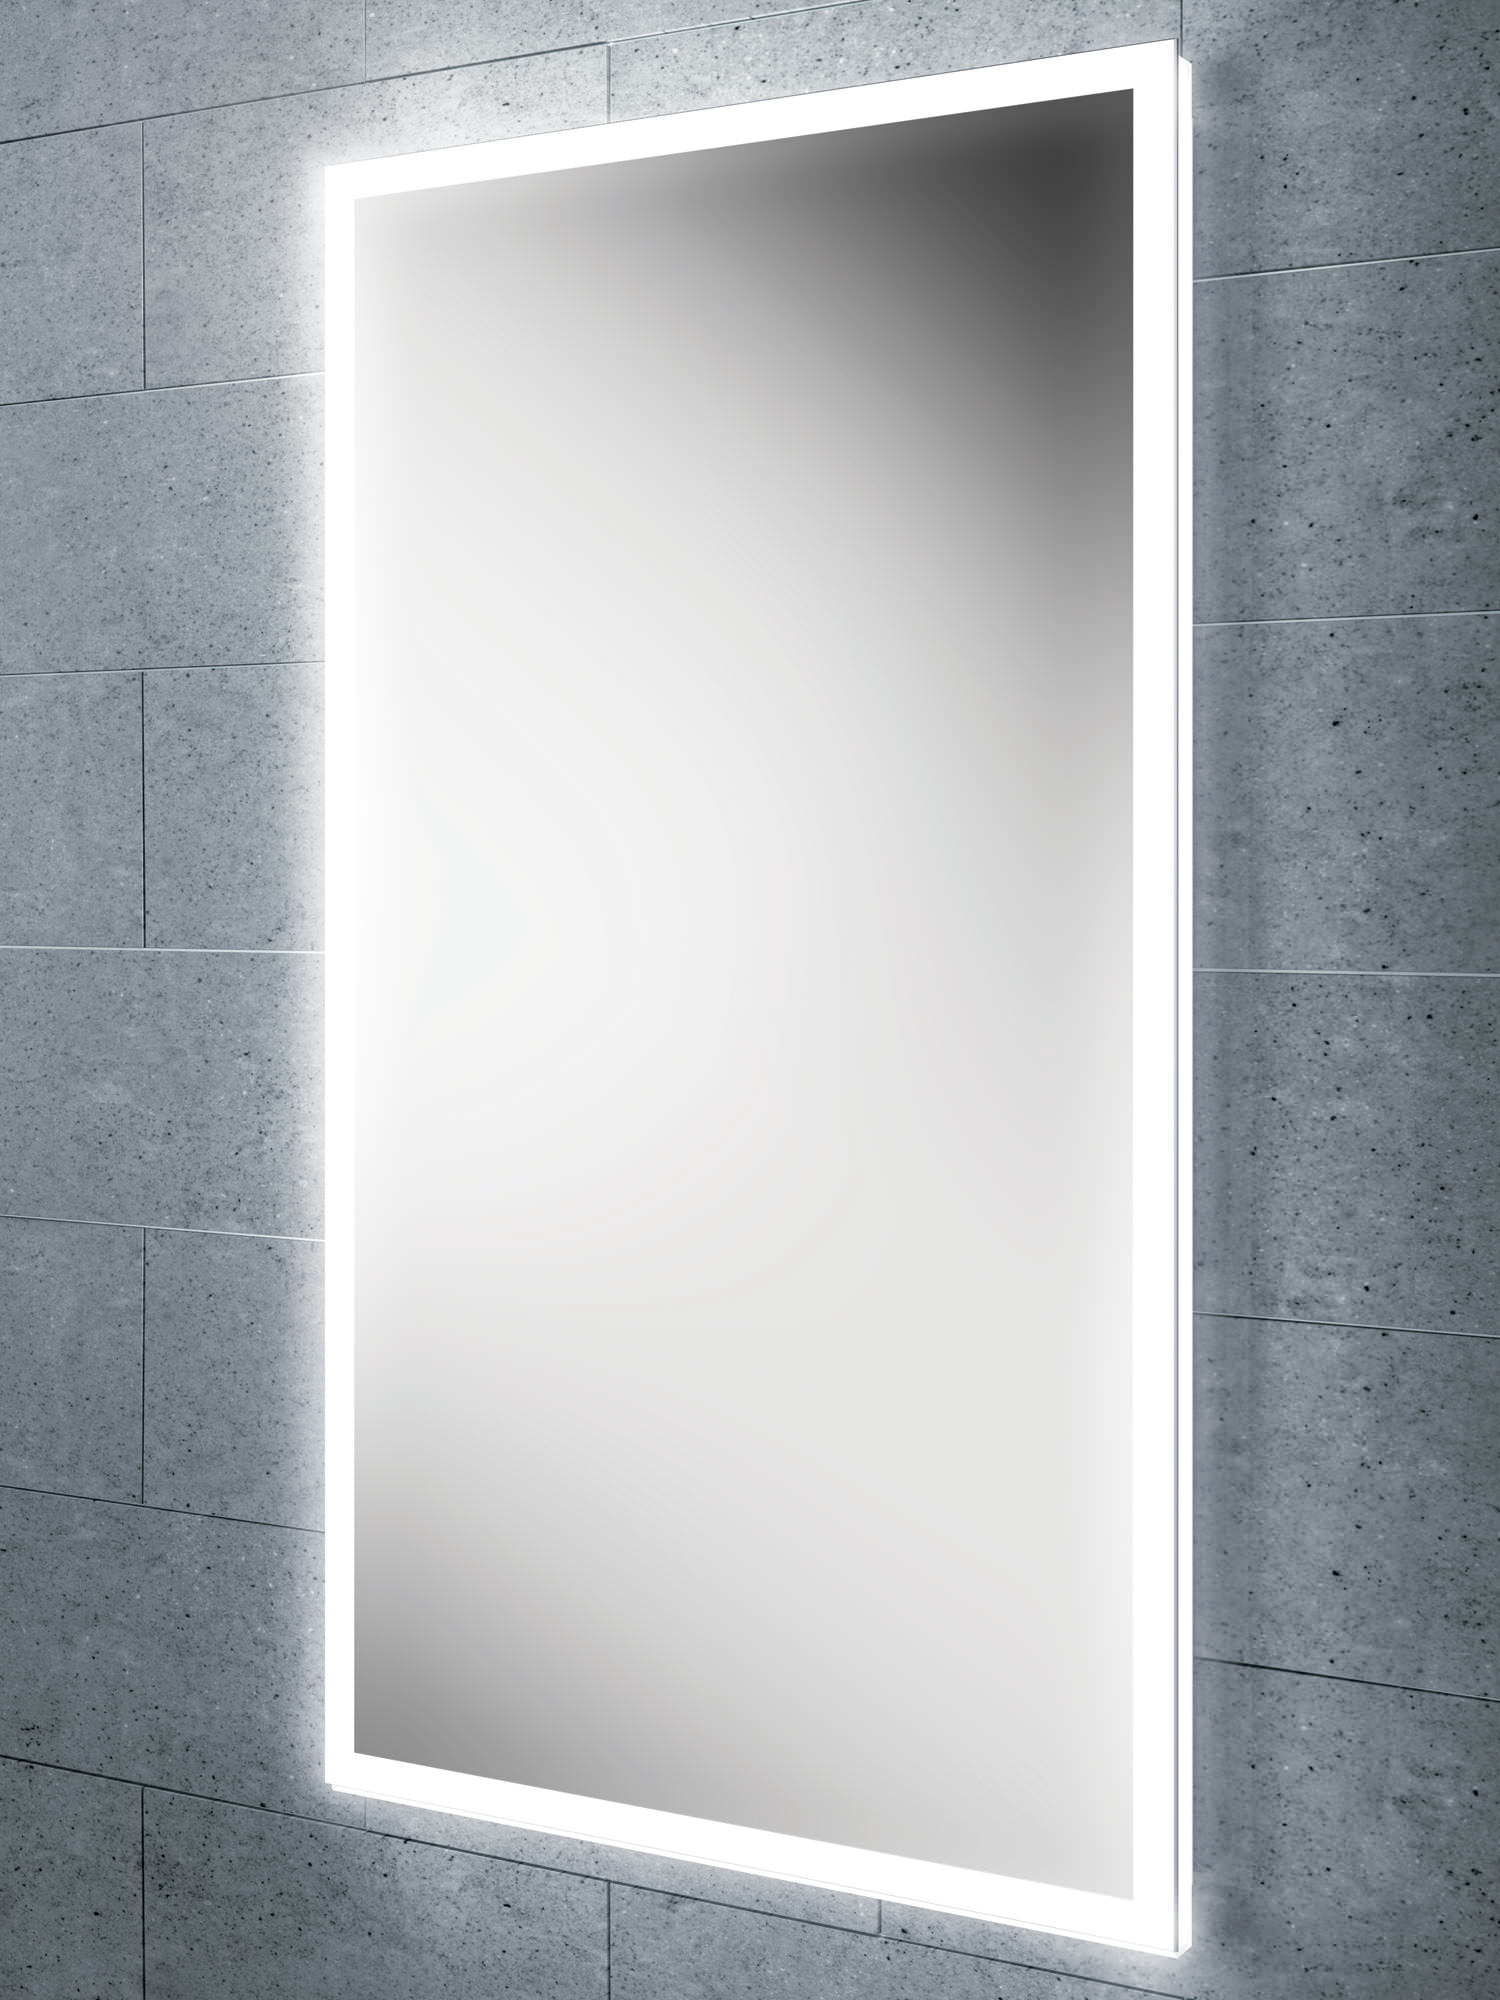 HIB Globe 45 Steam Free LED Illuminated Bathroom Mirror 450 x 800mm & led illuminated bathroom mirrors | My Web Value